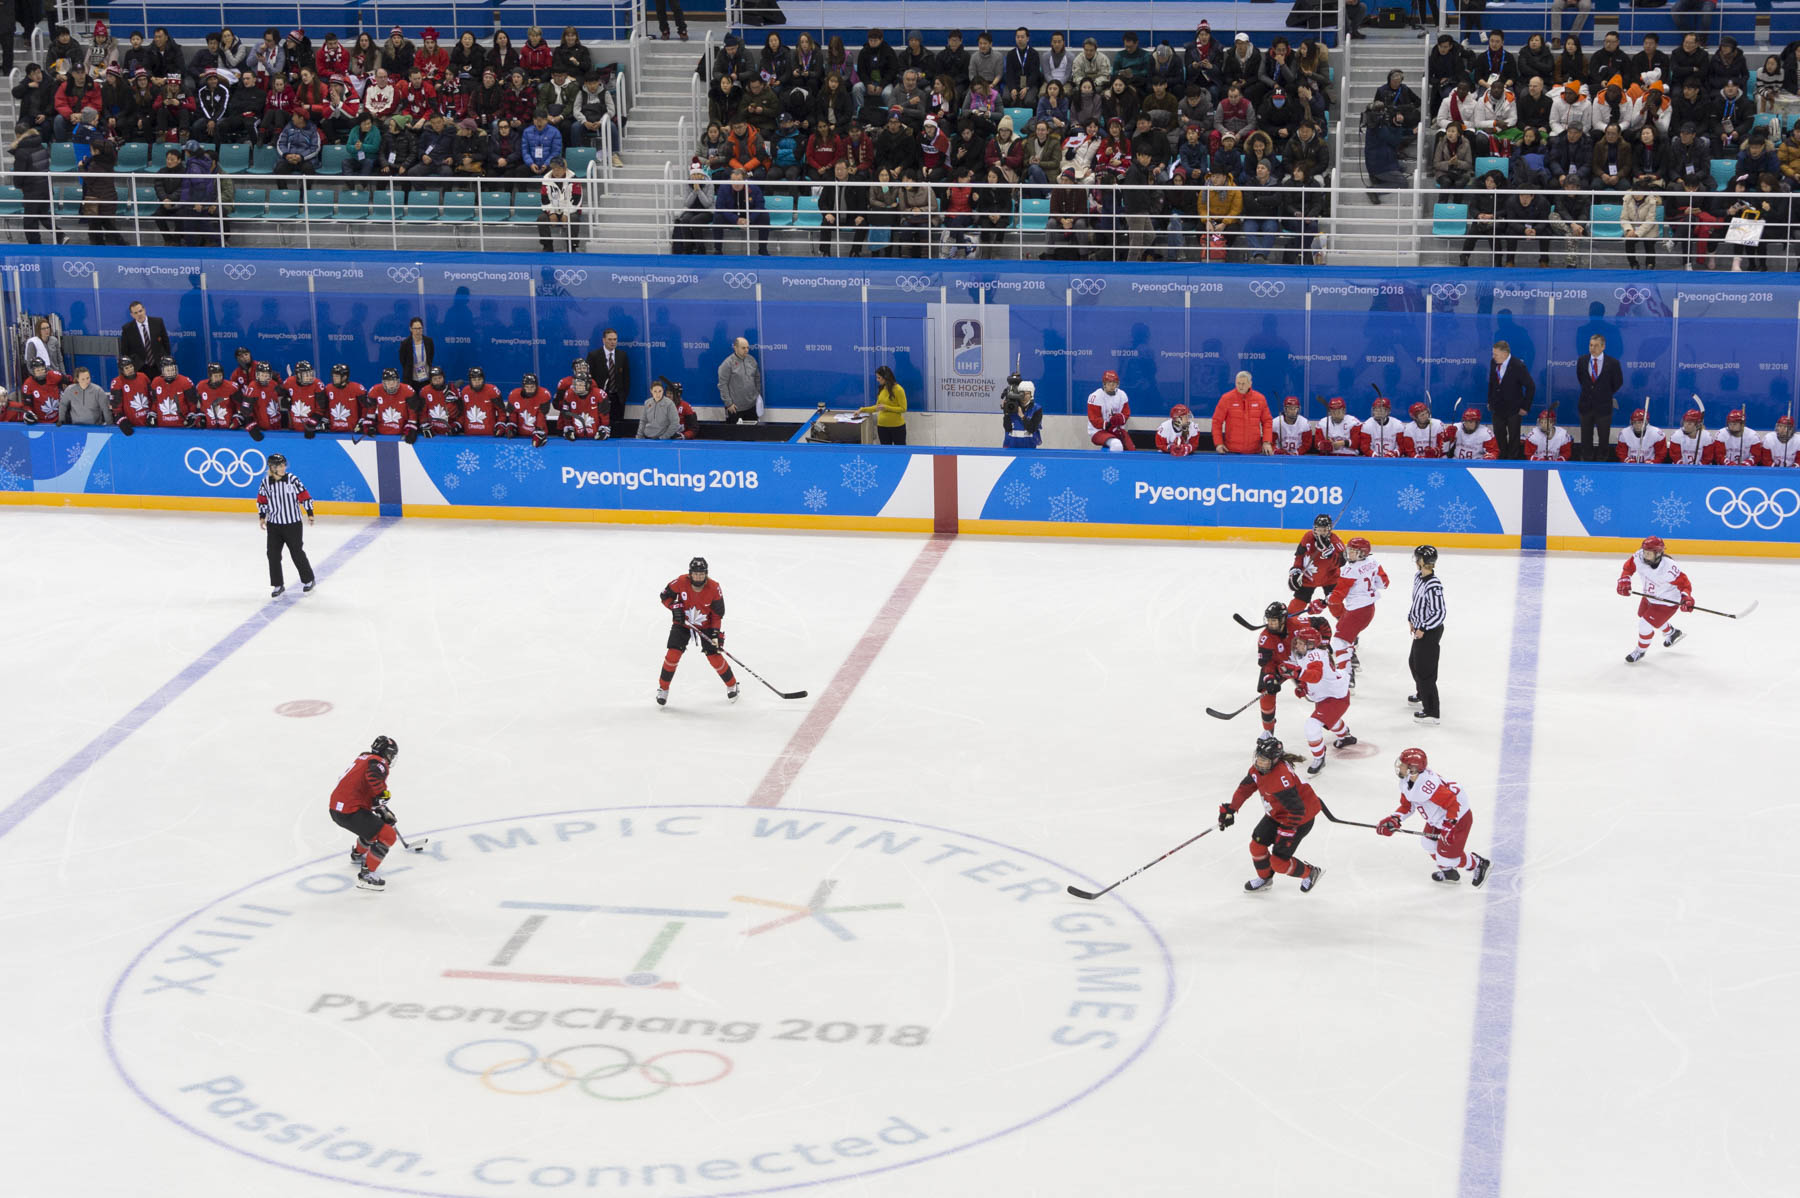 The day ended at the Gangneung Hockey Centre where Her Excellency watched Team Canada take on the athletes of Russia.